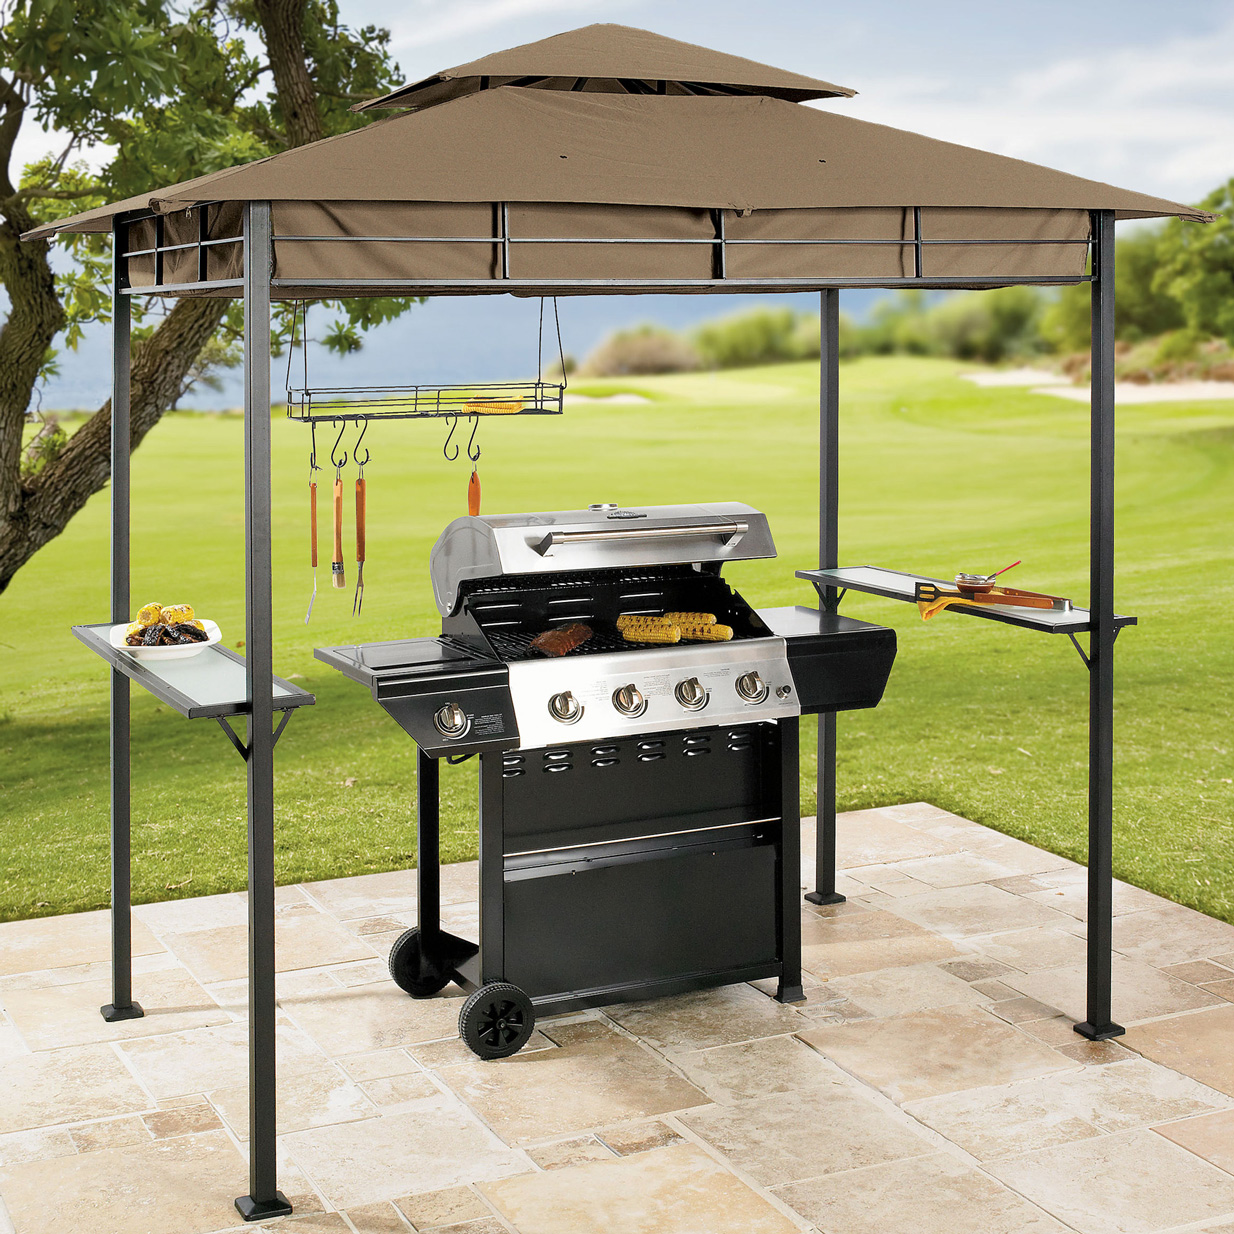 GreenHome123 Outdoor Gabzebo for Grilling BBQ Grill with Vented Canopy Tent at Sears.com